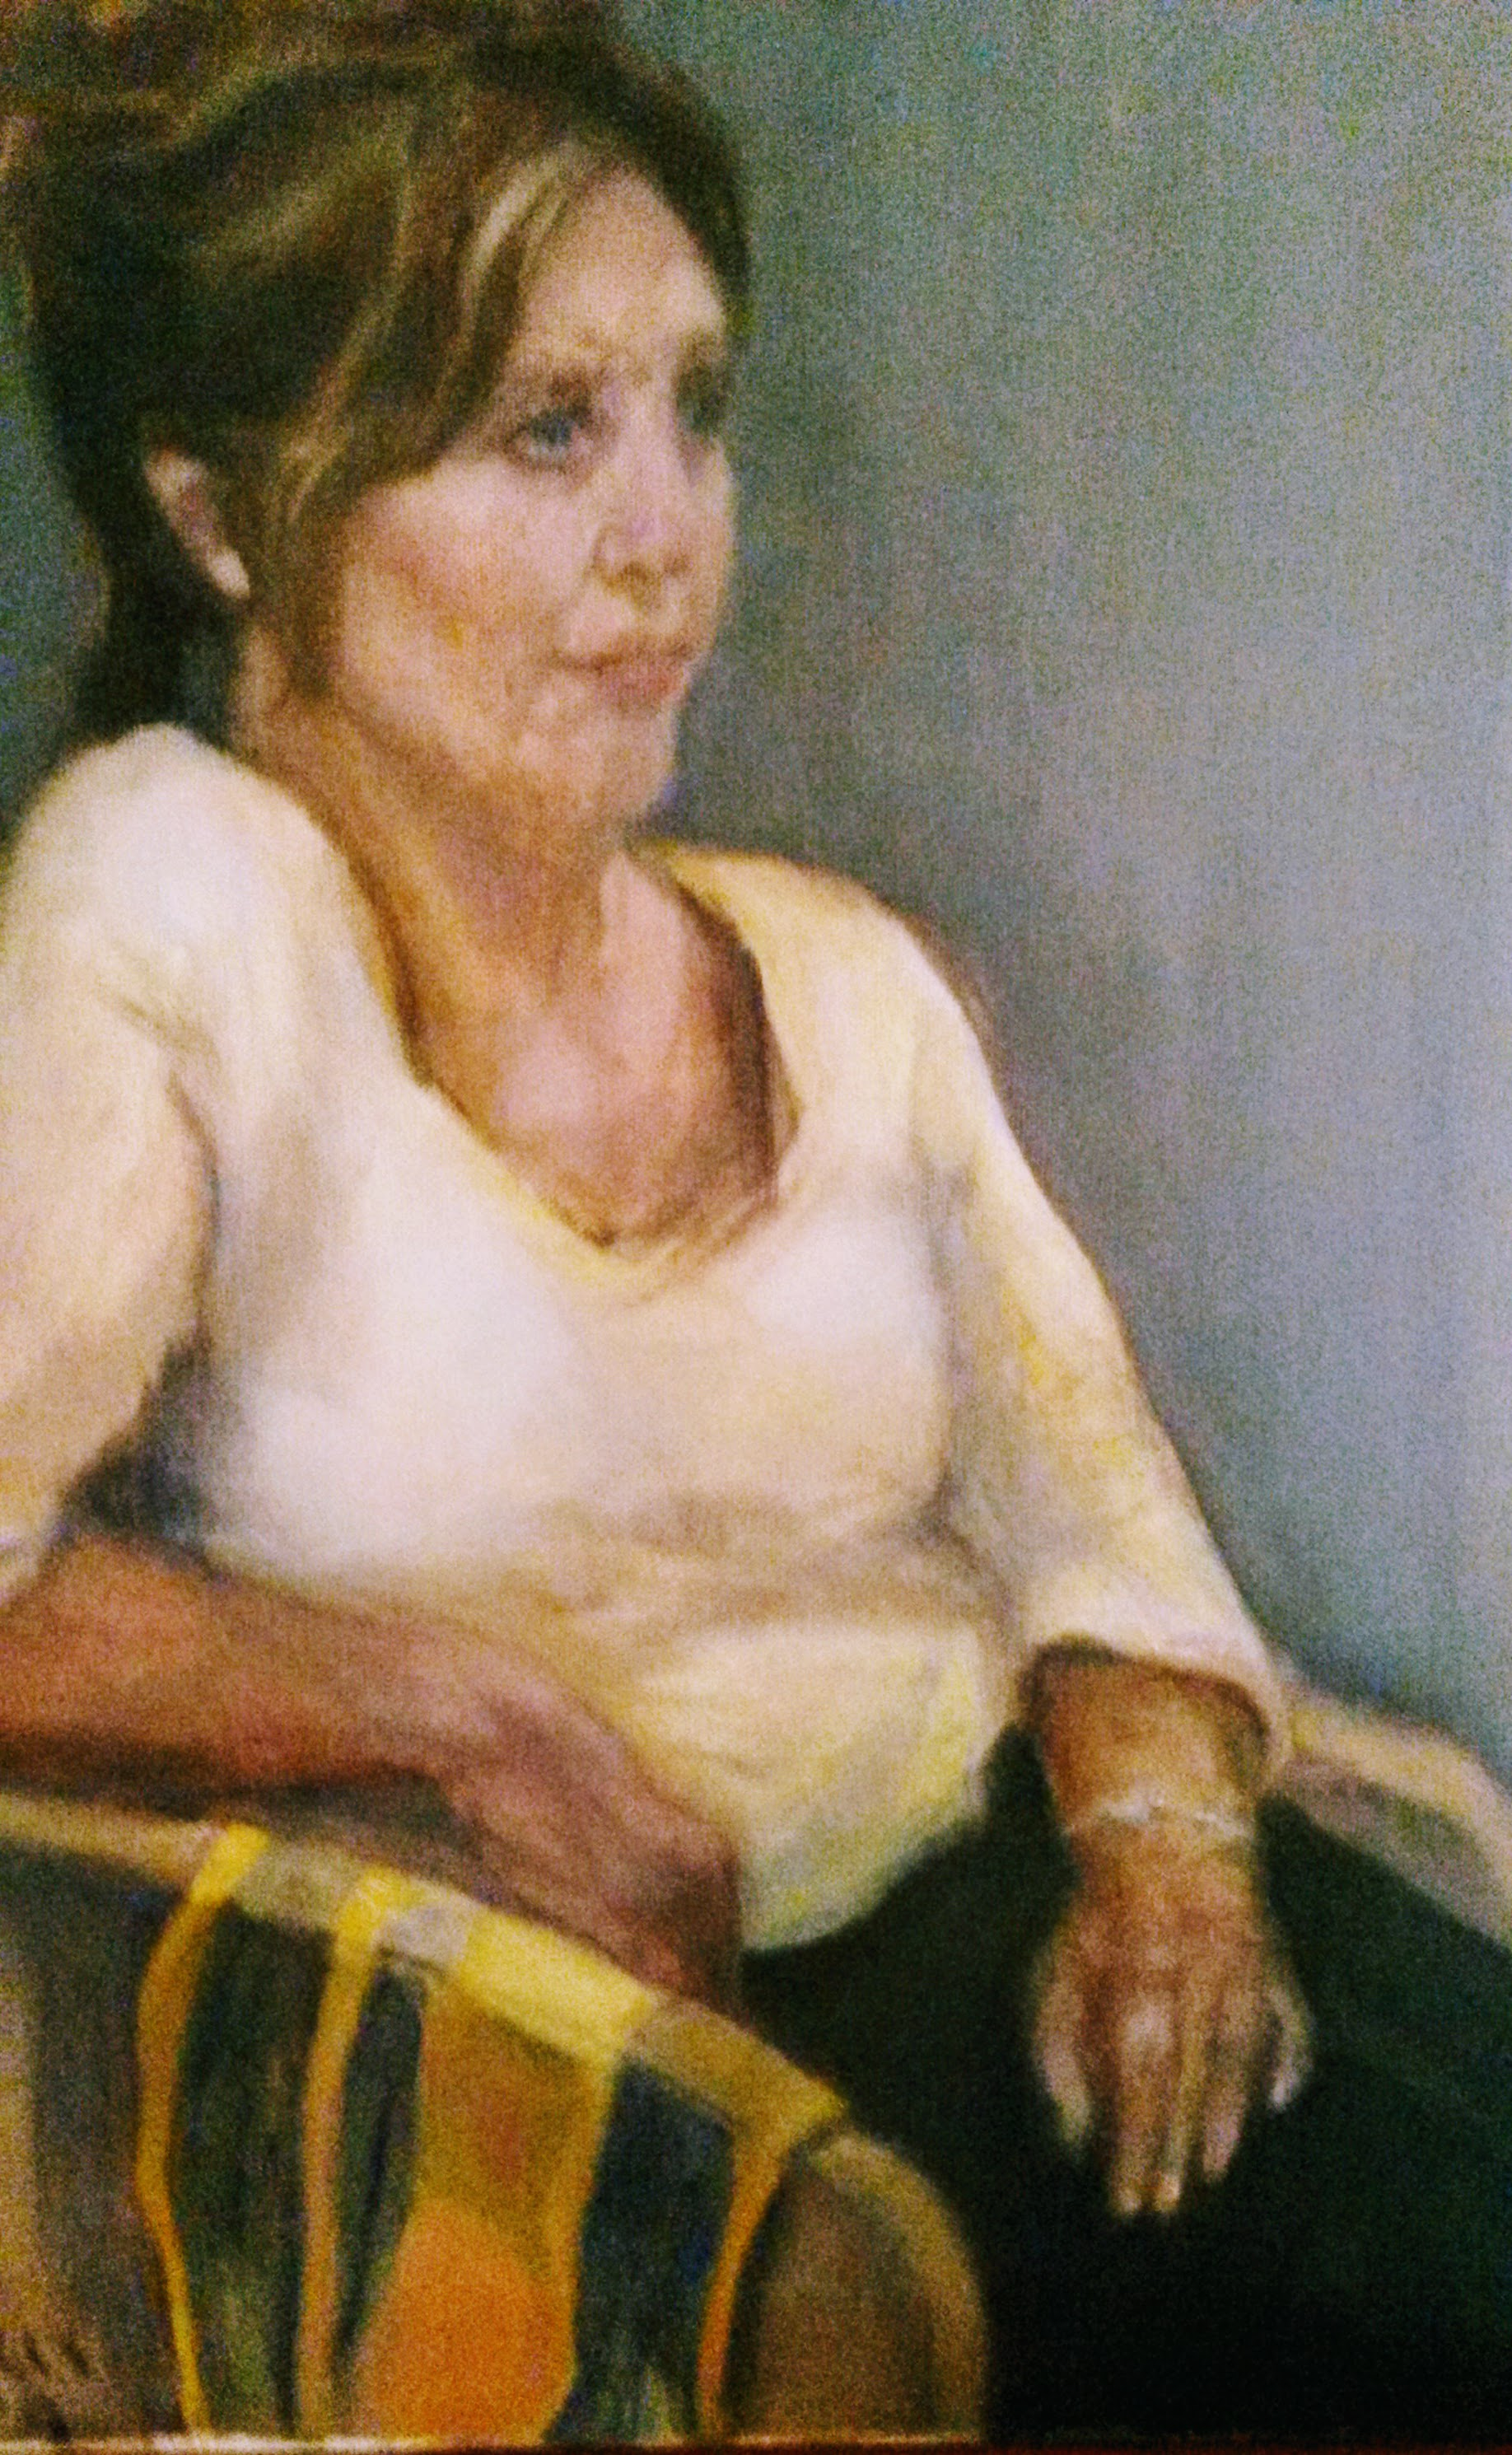 Study in Yellow and Blue    Oil on canvas  by Sally Hyman